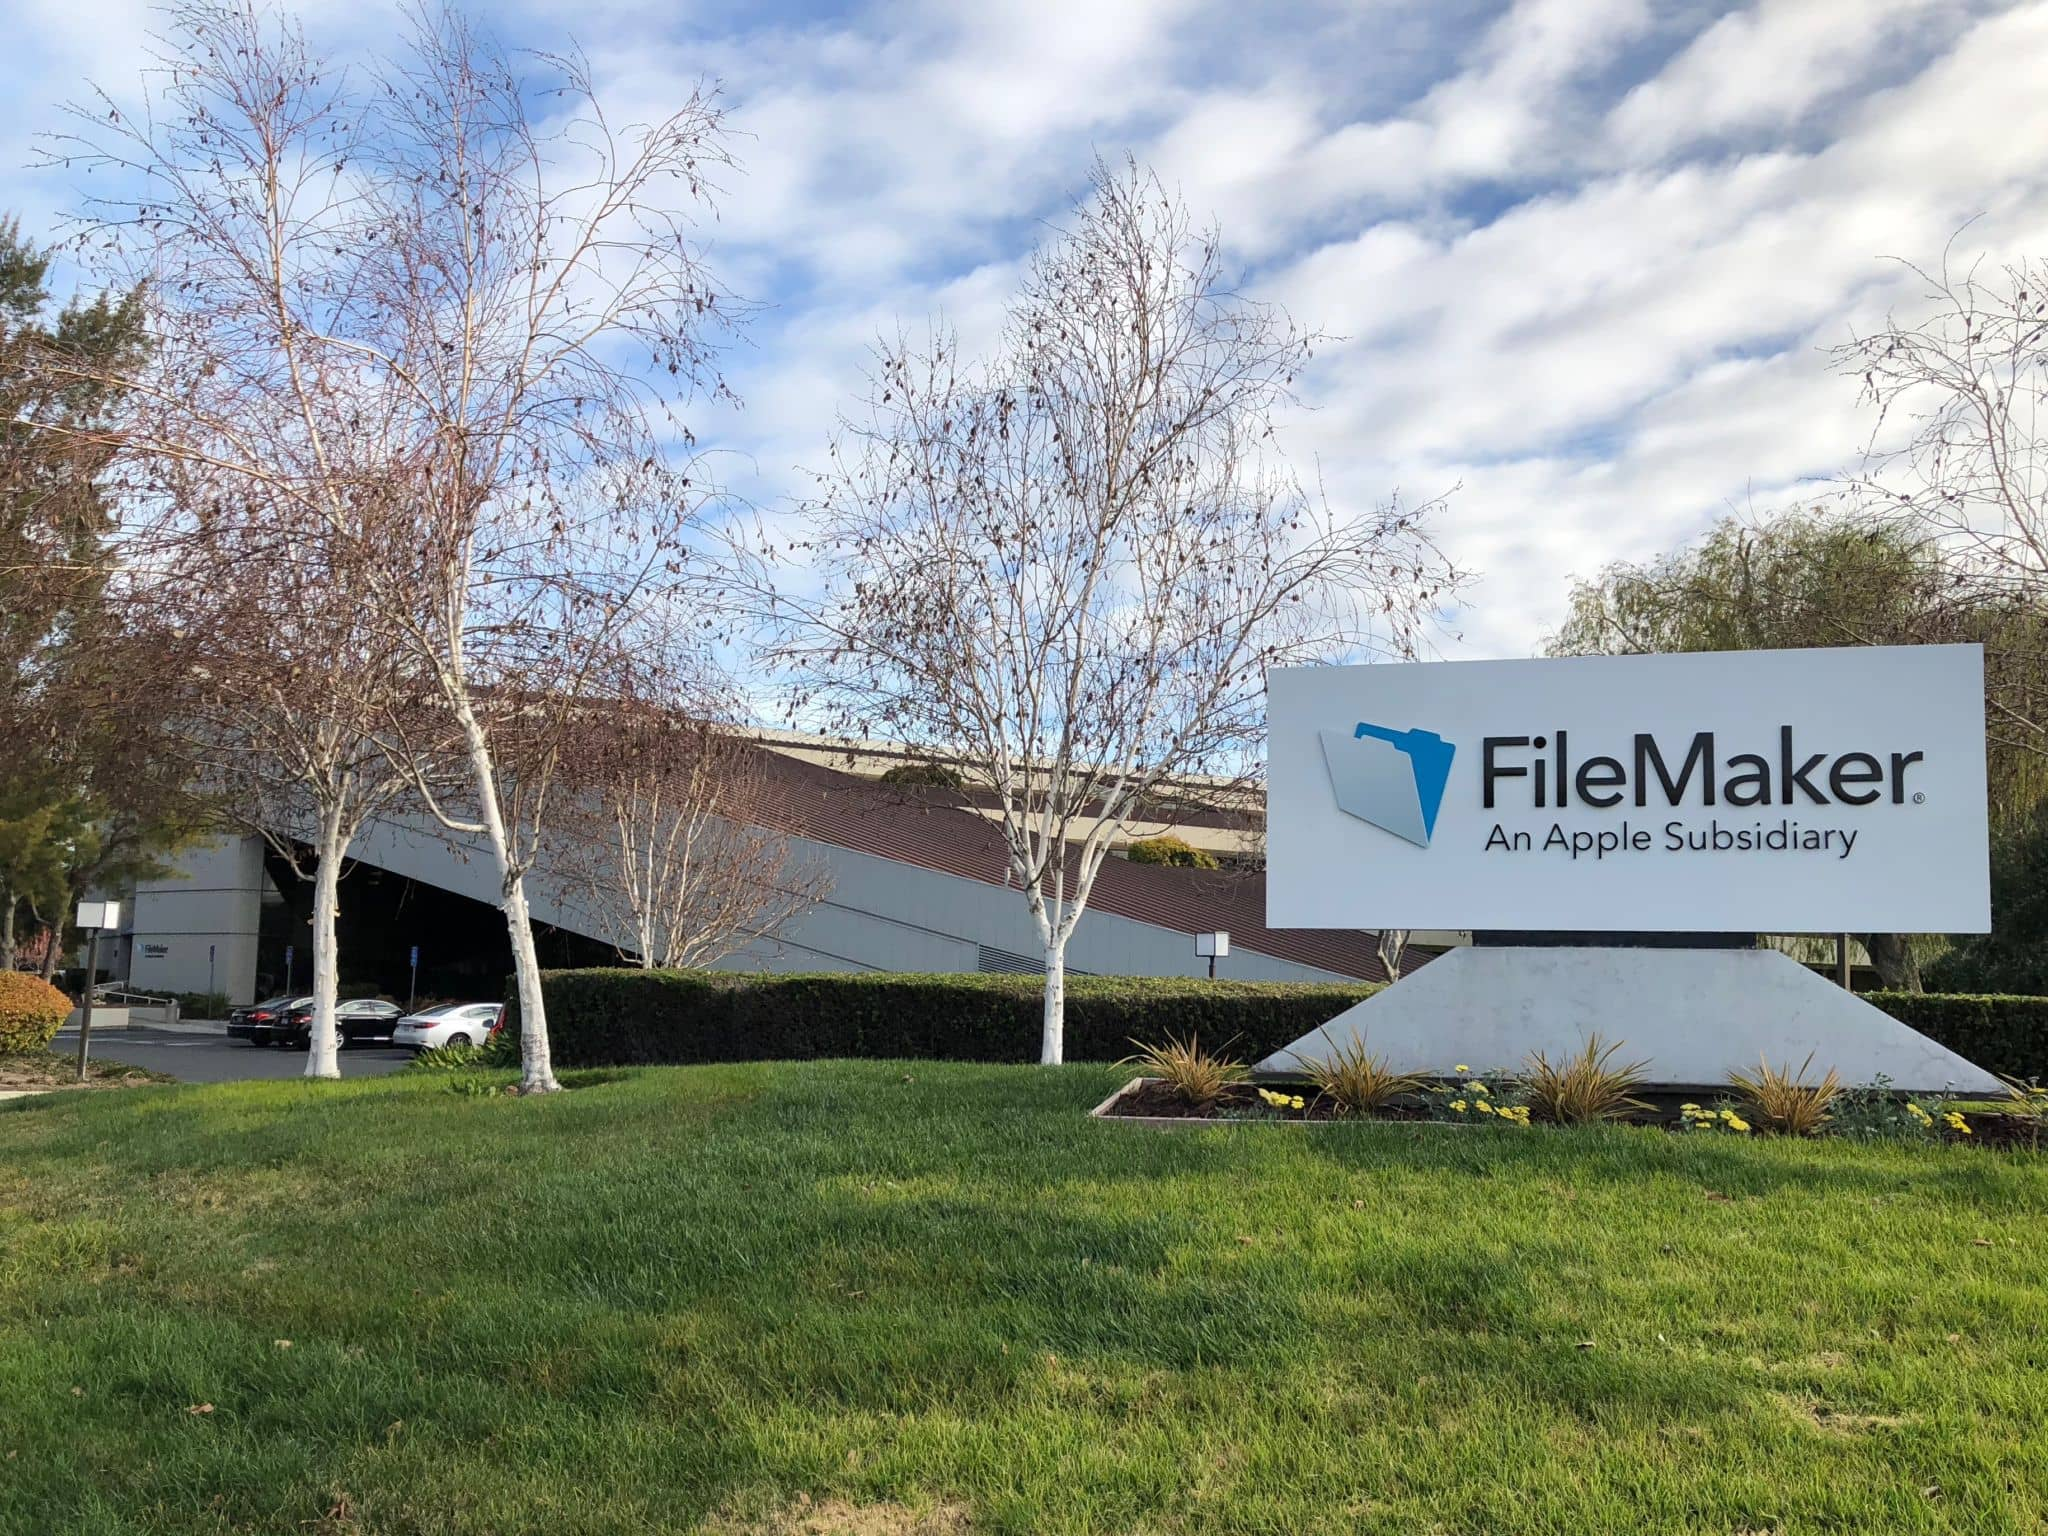 Visit to Apple and FileMaker in California 13